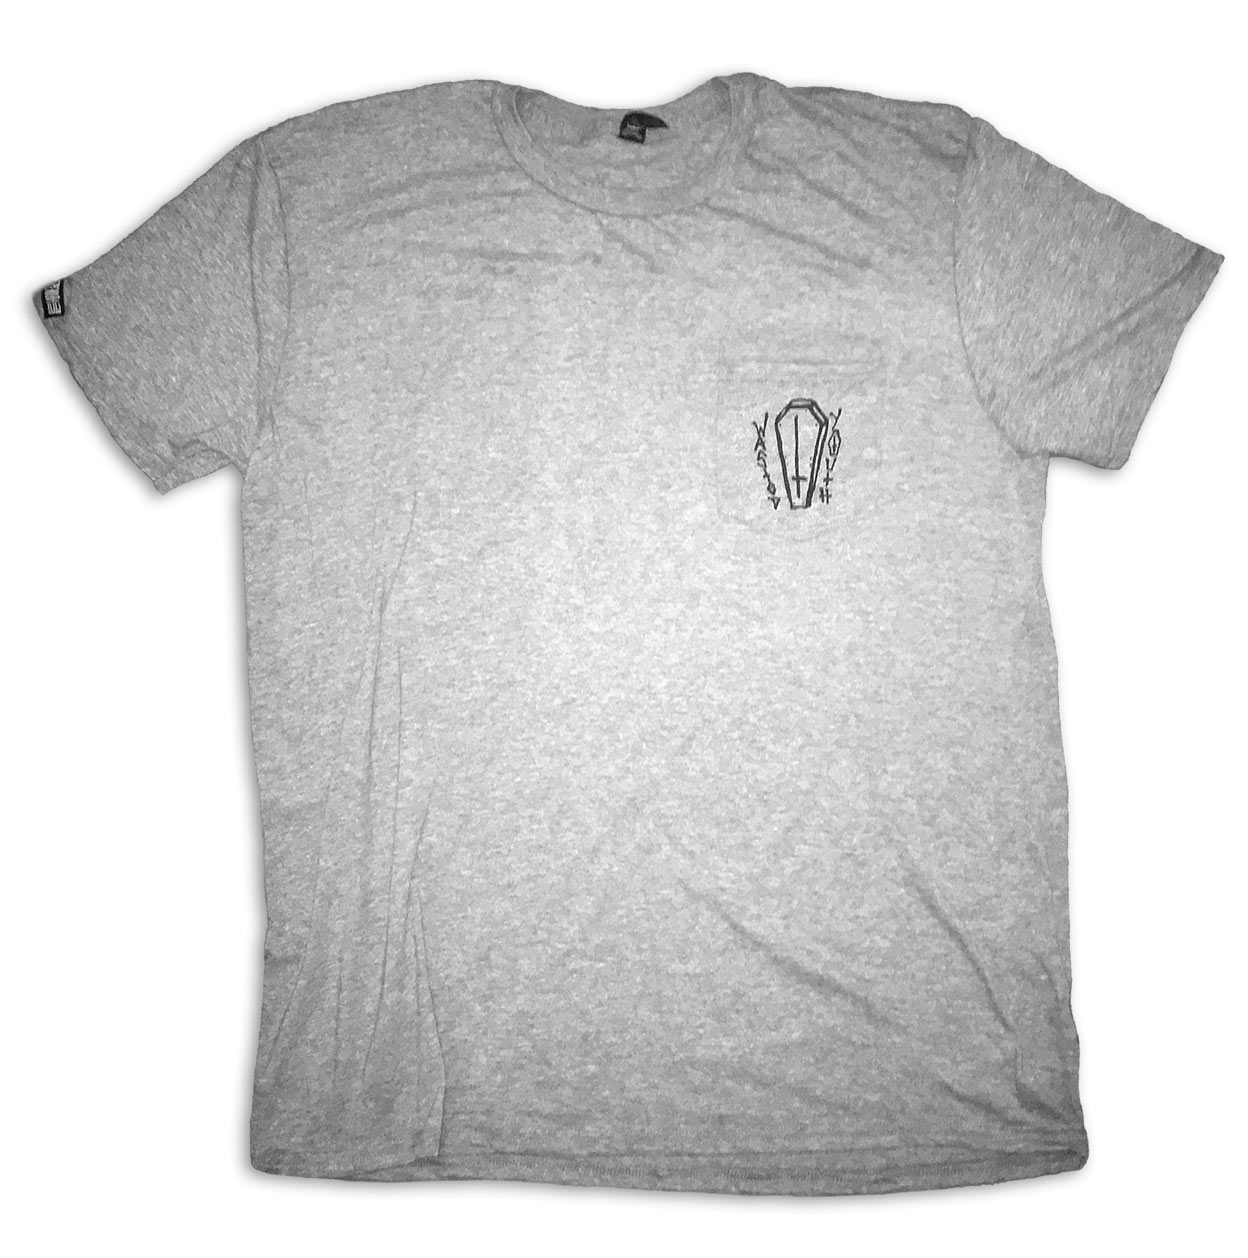 Grey Coffin Pocket Tee